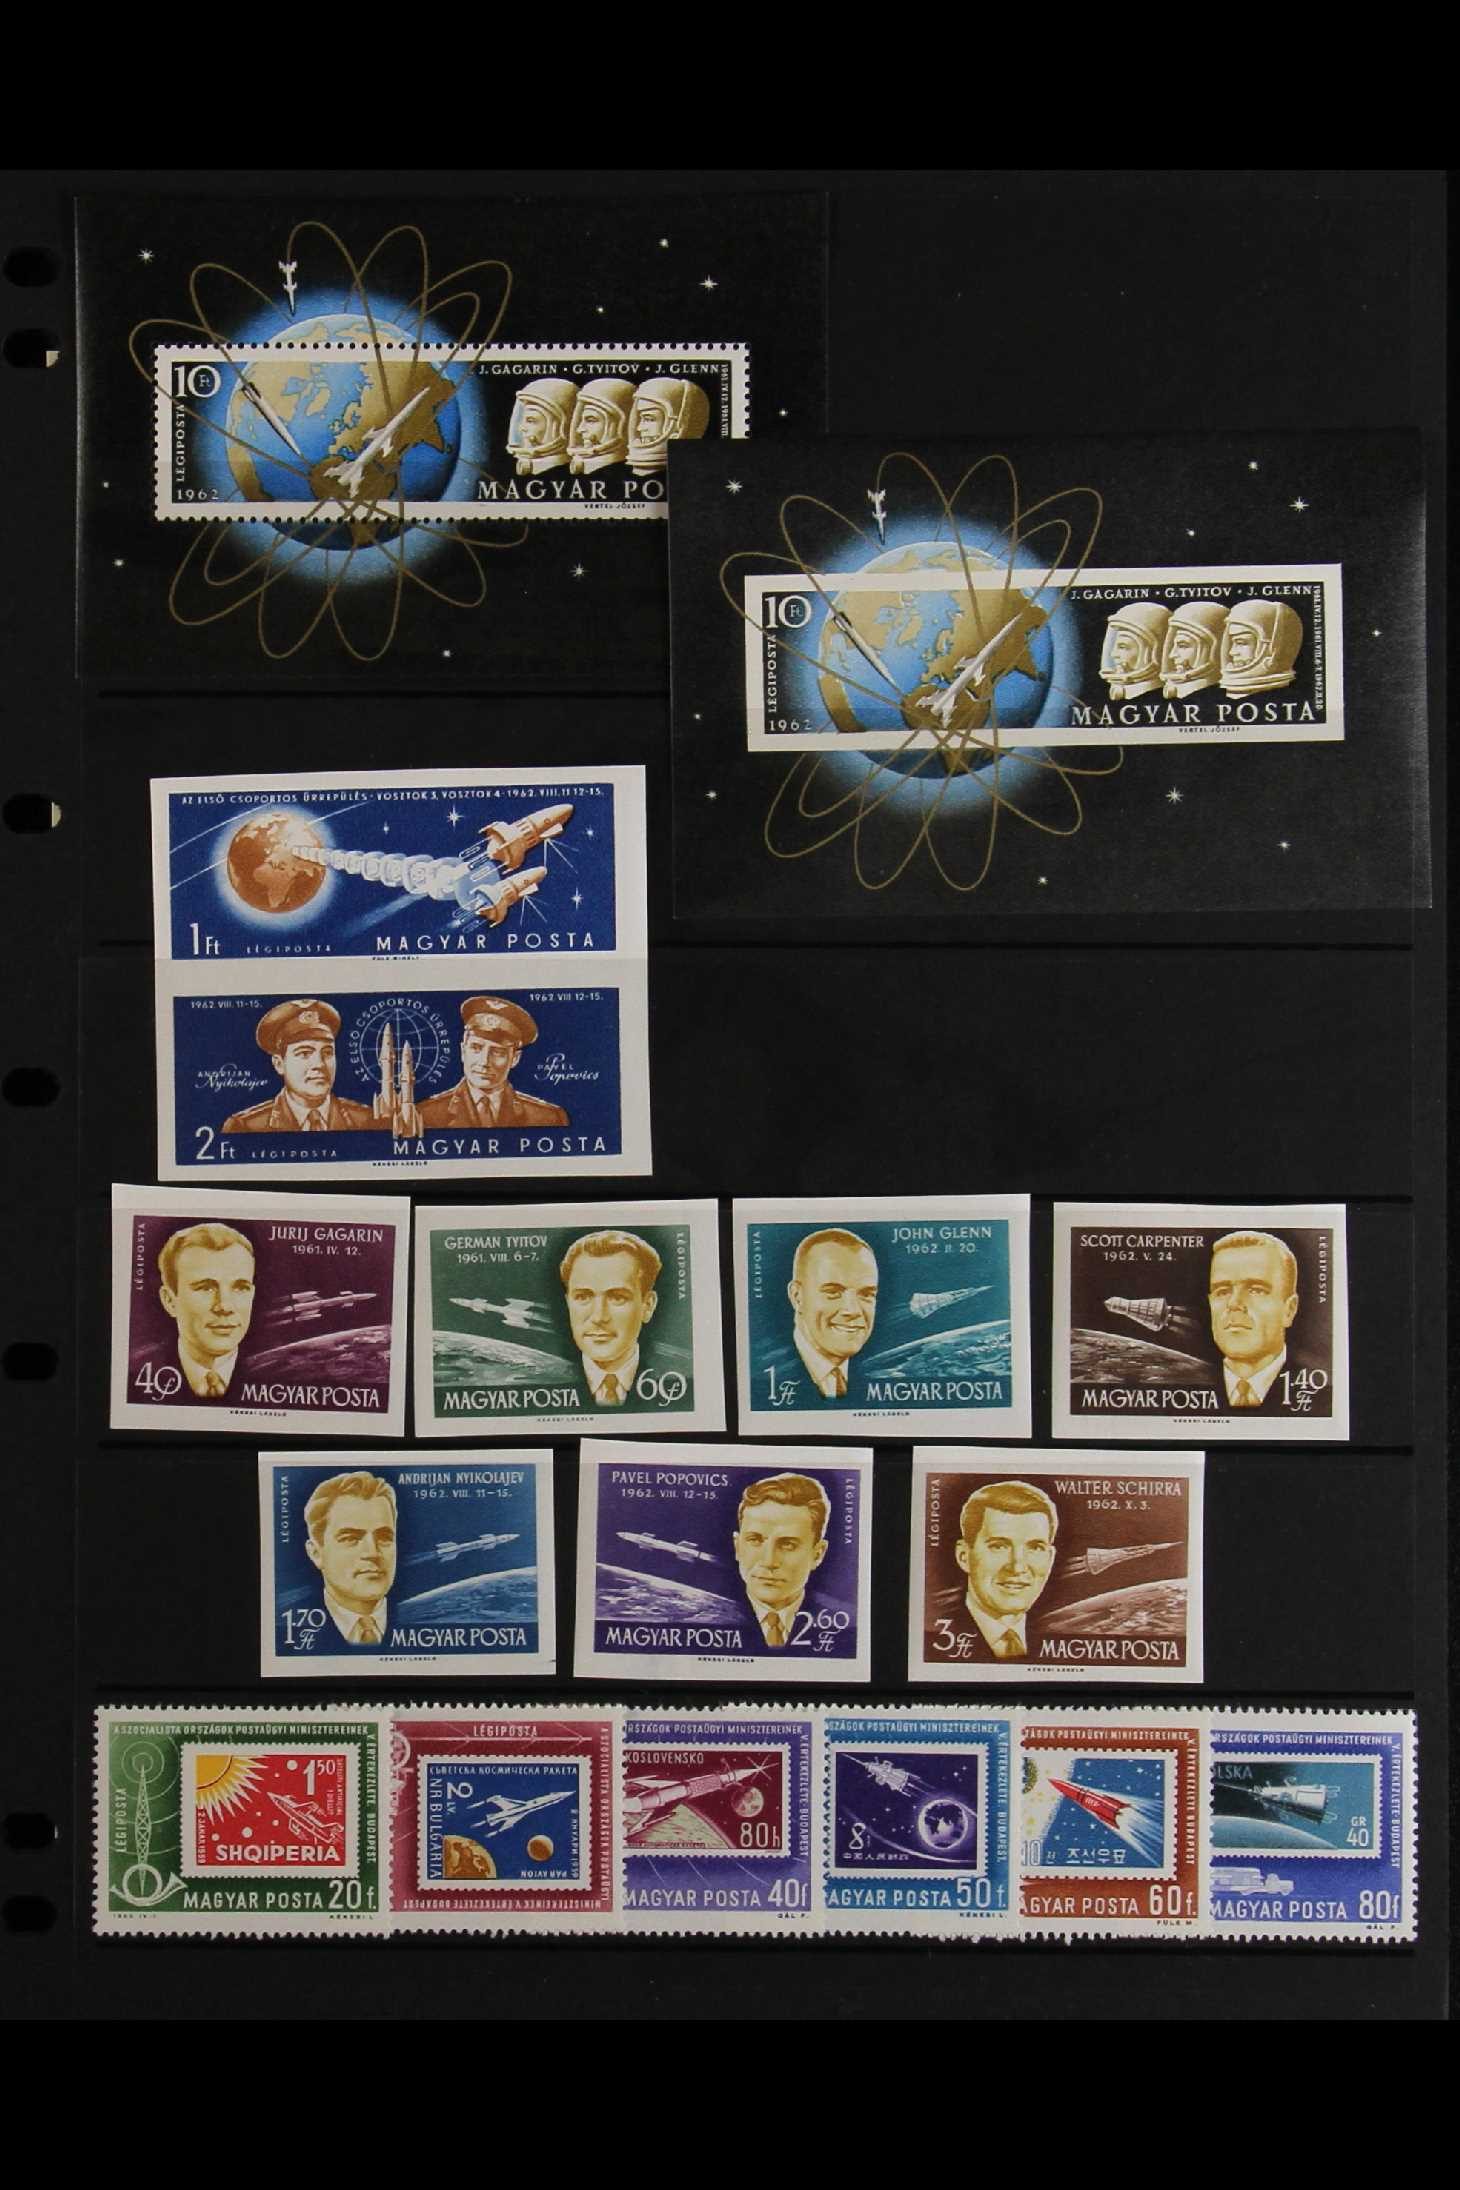 HUNGARY 1959-65 NHM SPACE TOPICAL COLLECTION OF HUNGARY 1959-65 never hinged mint, perf & imperf - Image 3 of 4